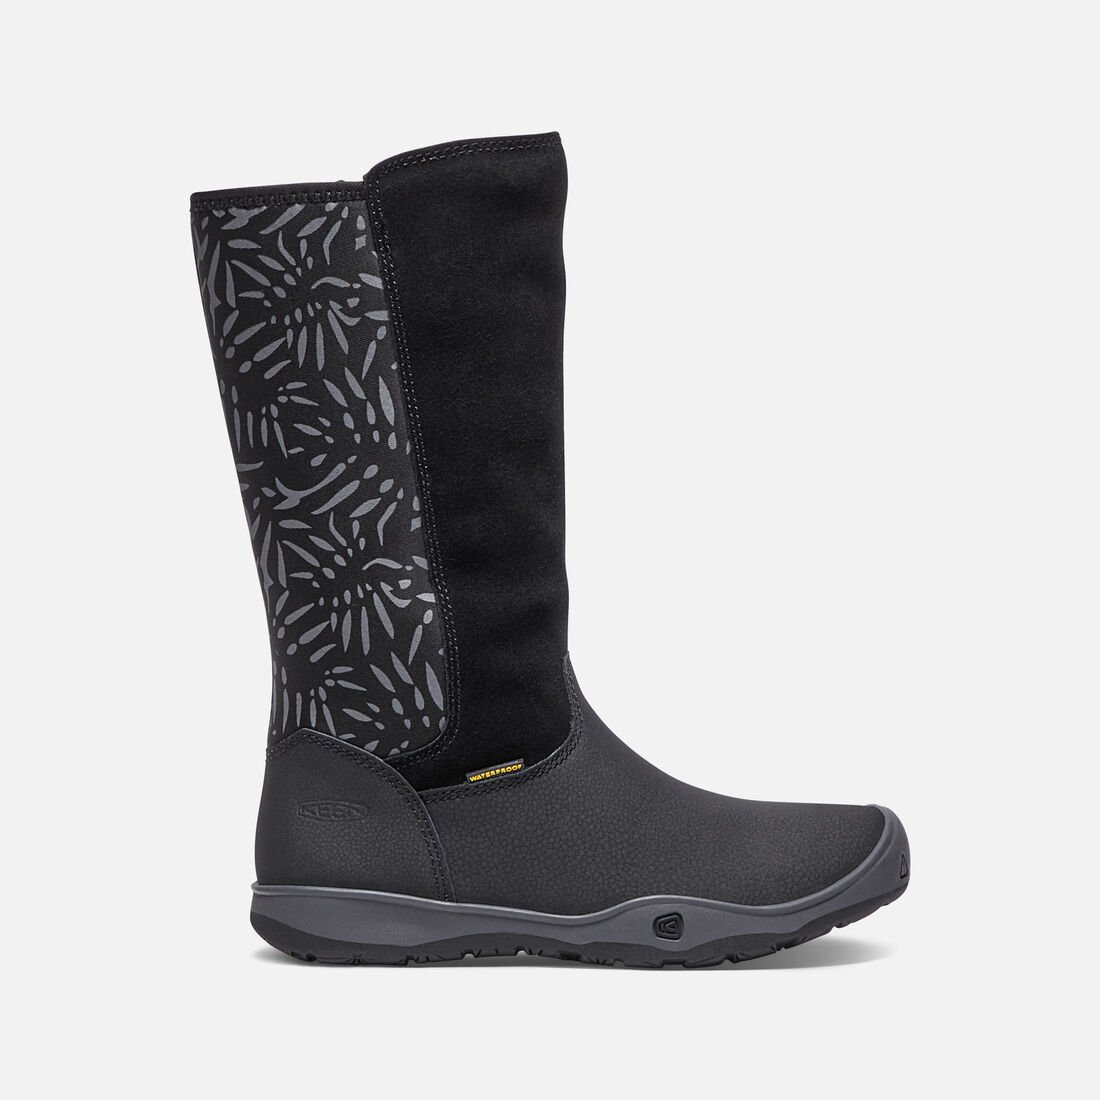 Little Kids' MOXIE TALL Waterproof Boot in Black/Magnet - large view.